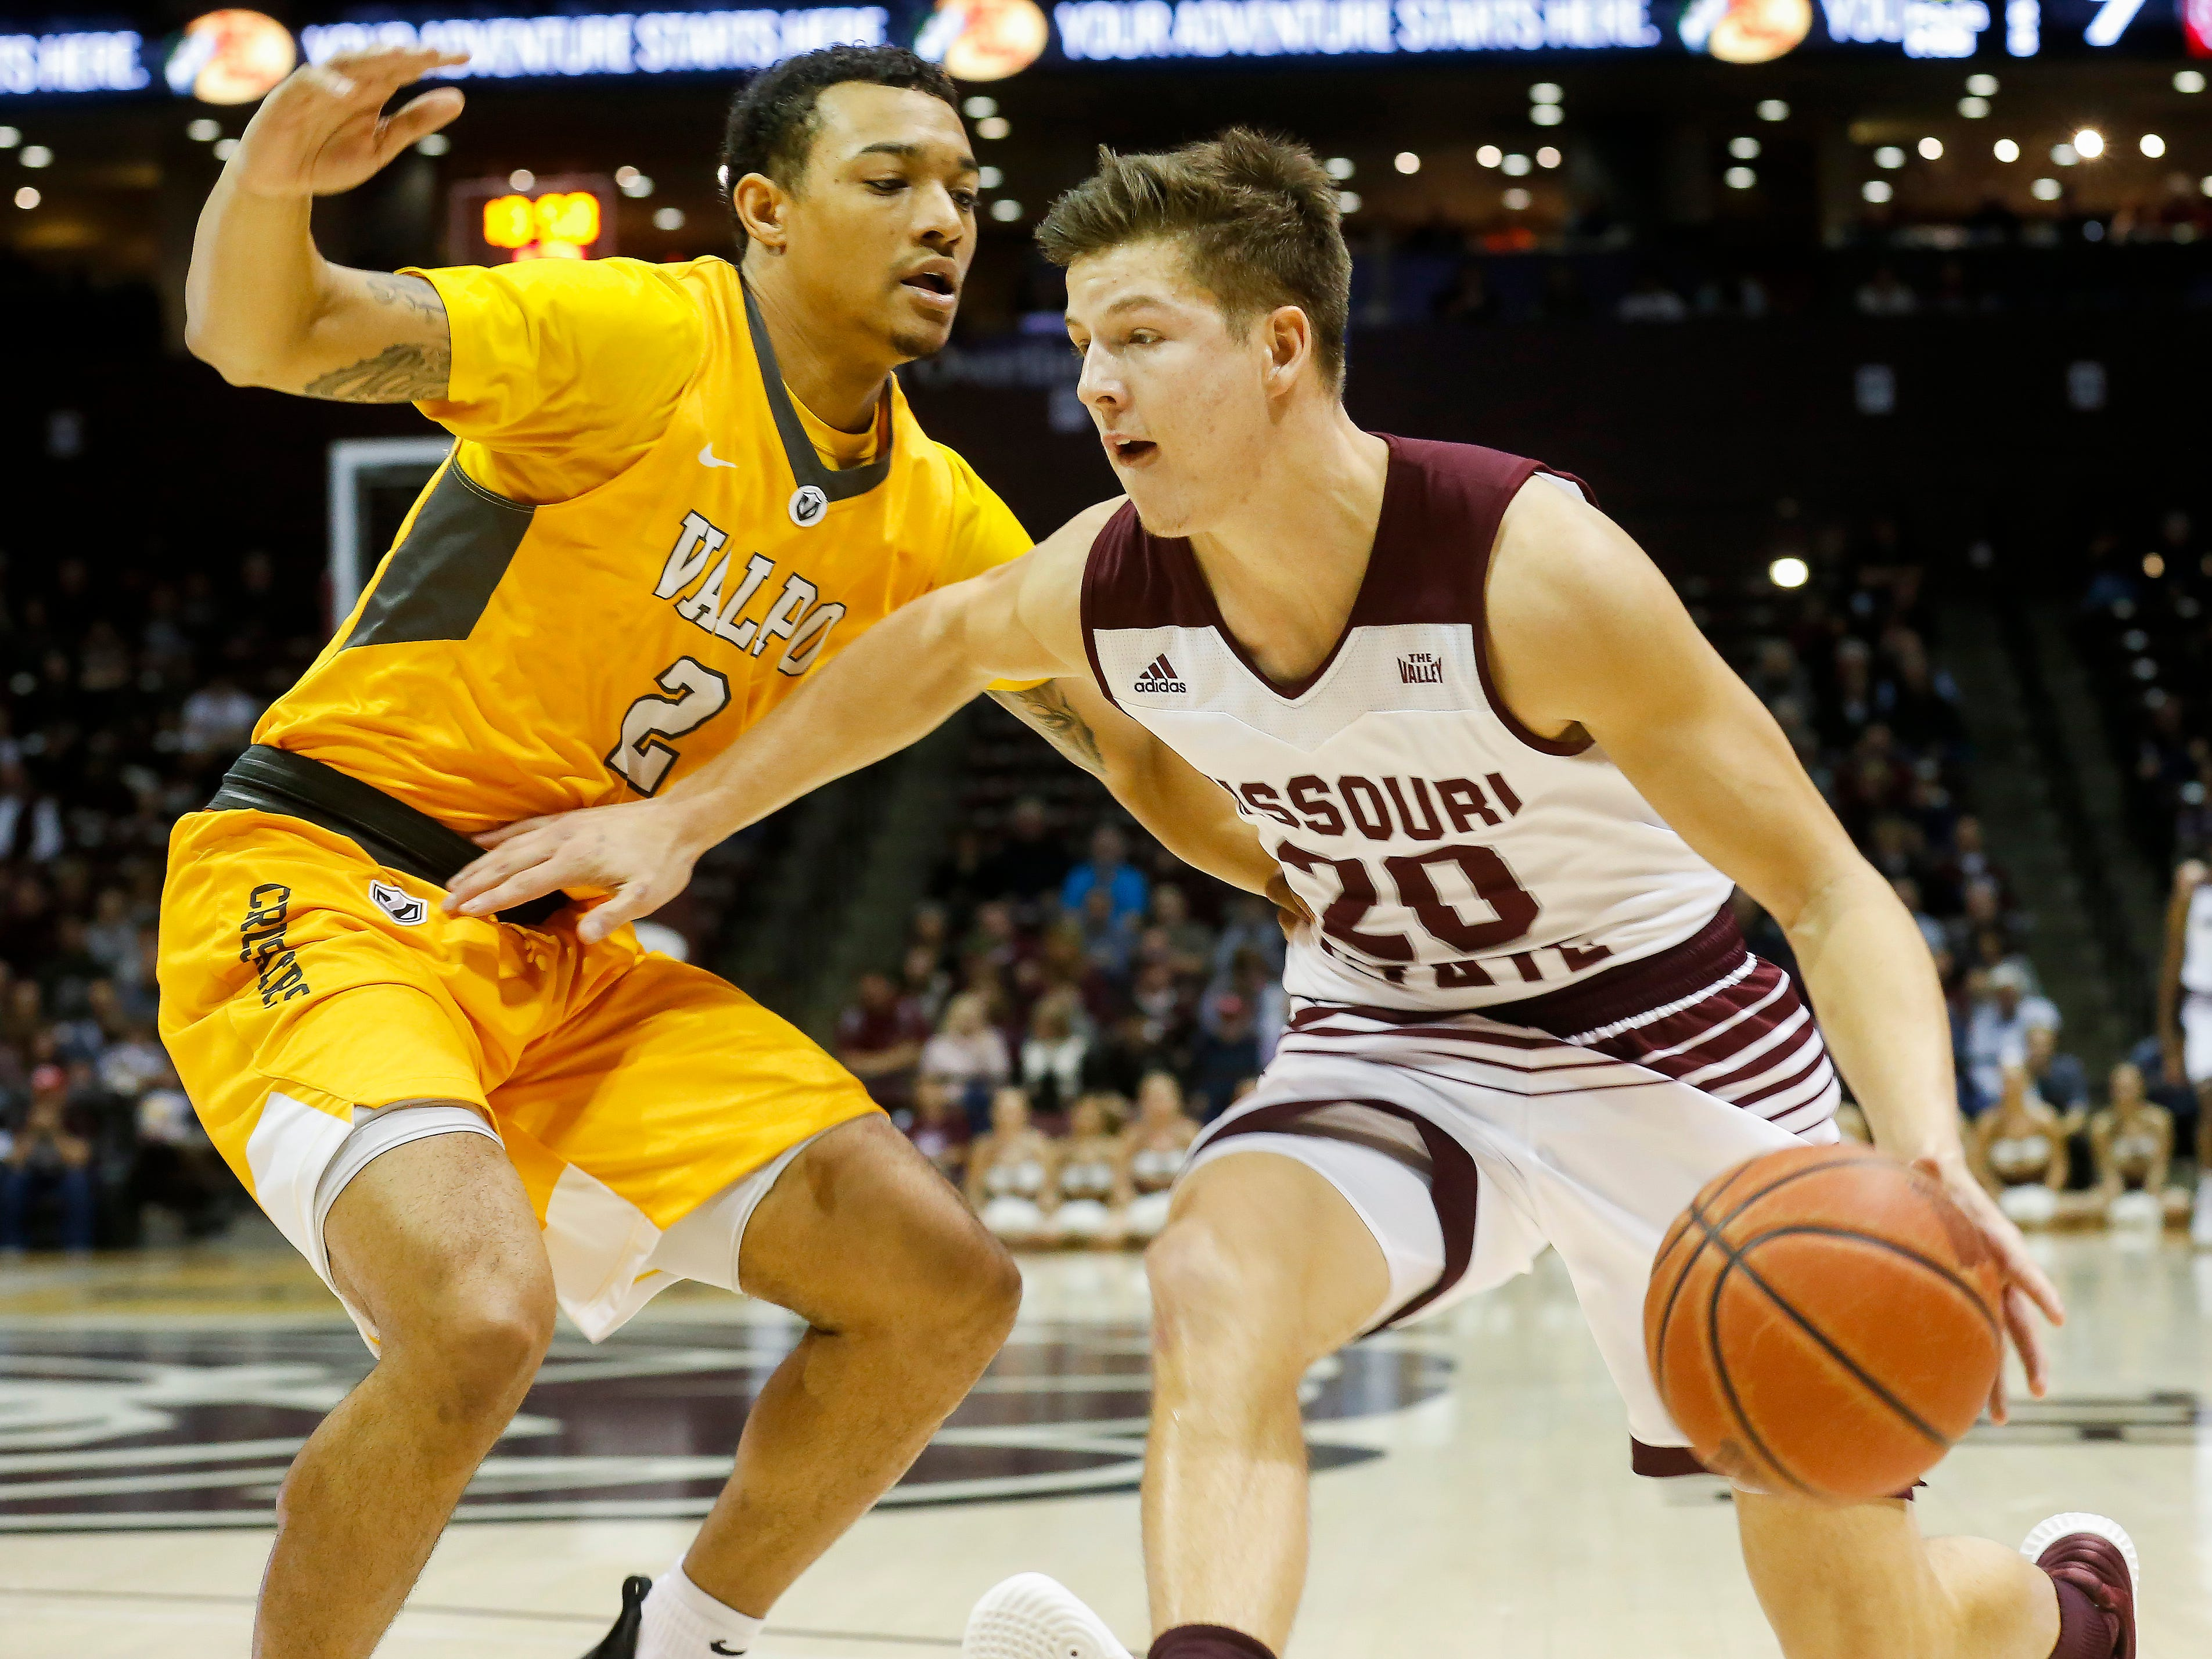 Ryan Kreklow, of Missouri State University, moves against Deion Lavender during the Bears game against Valparaiso at JQH Arena on Saturday, Jan. 5, 2018.